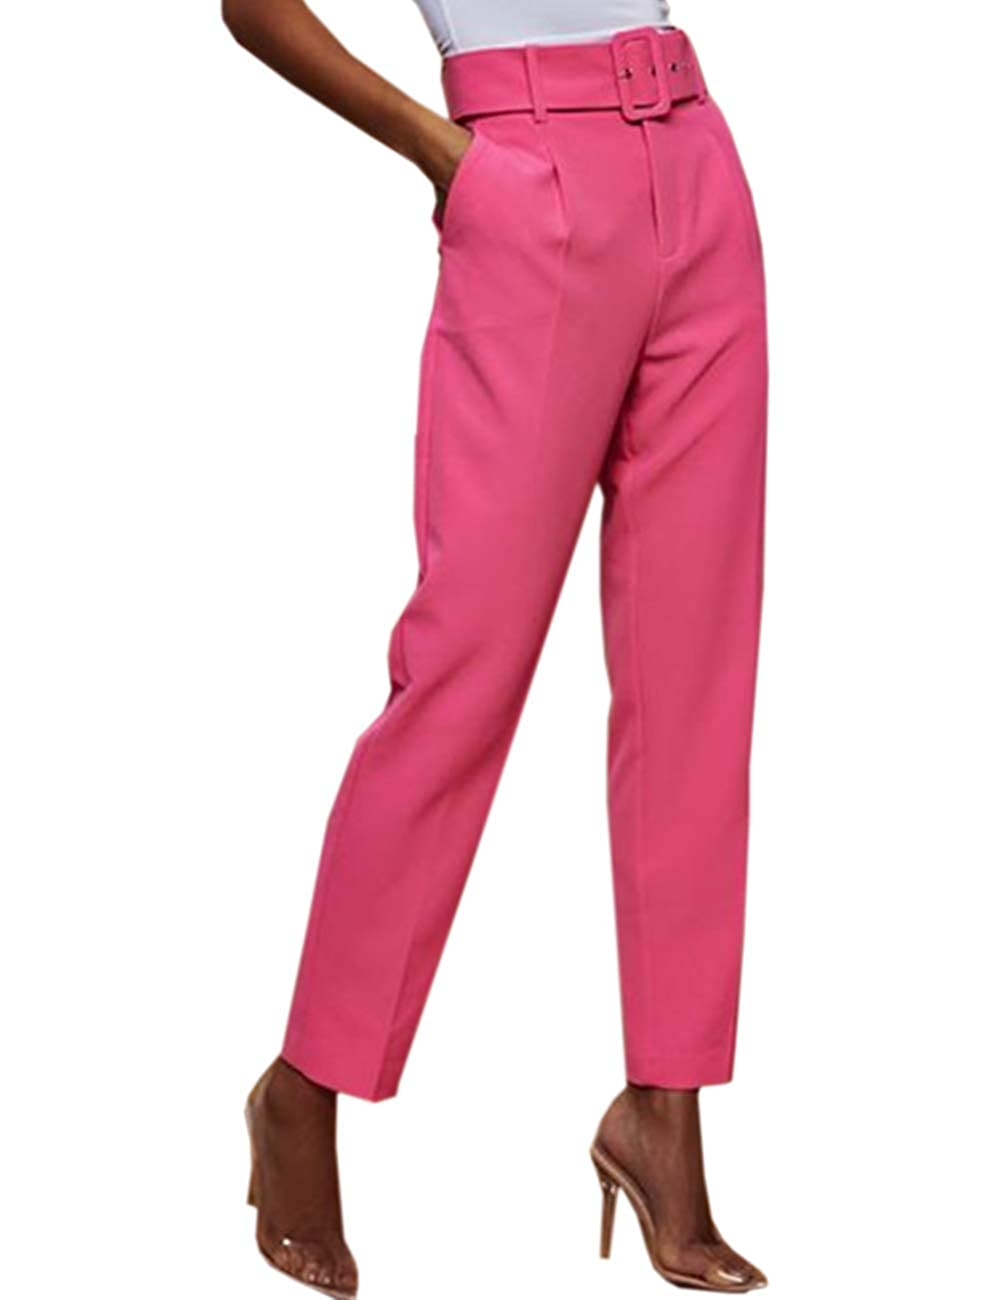 60s – 70s Pants, Jeans, Hippie, Bell Bottoms, Jumpsuits SOMTHRON Womens High Rise Belted Slim Fit Cigarette Pants High Waist Long Straight Tapered Leggings Pants with Belt $21.99 AT vintagedancer.com